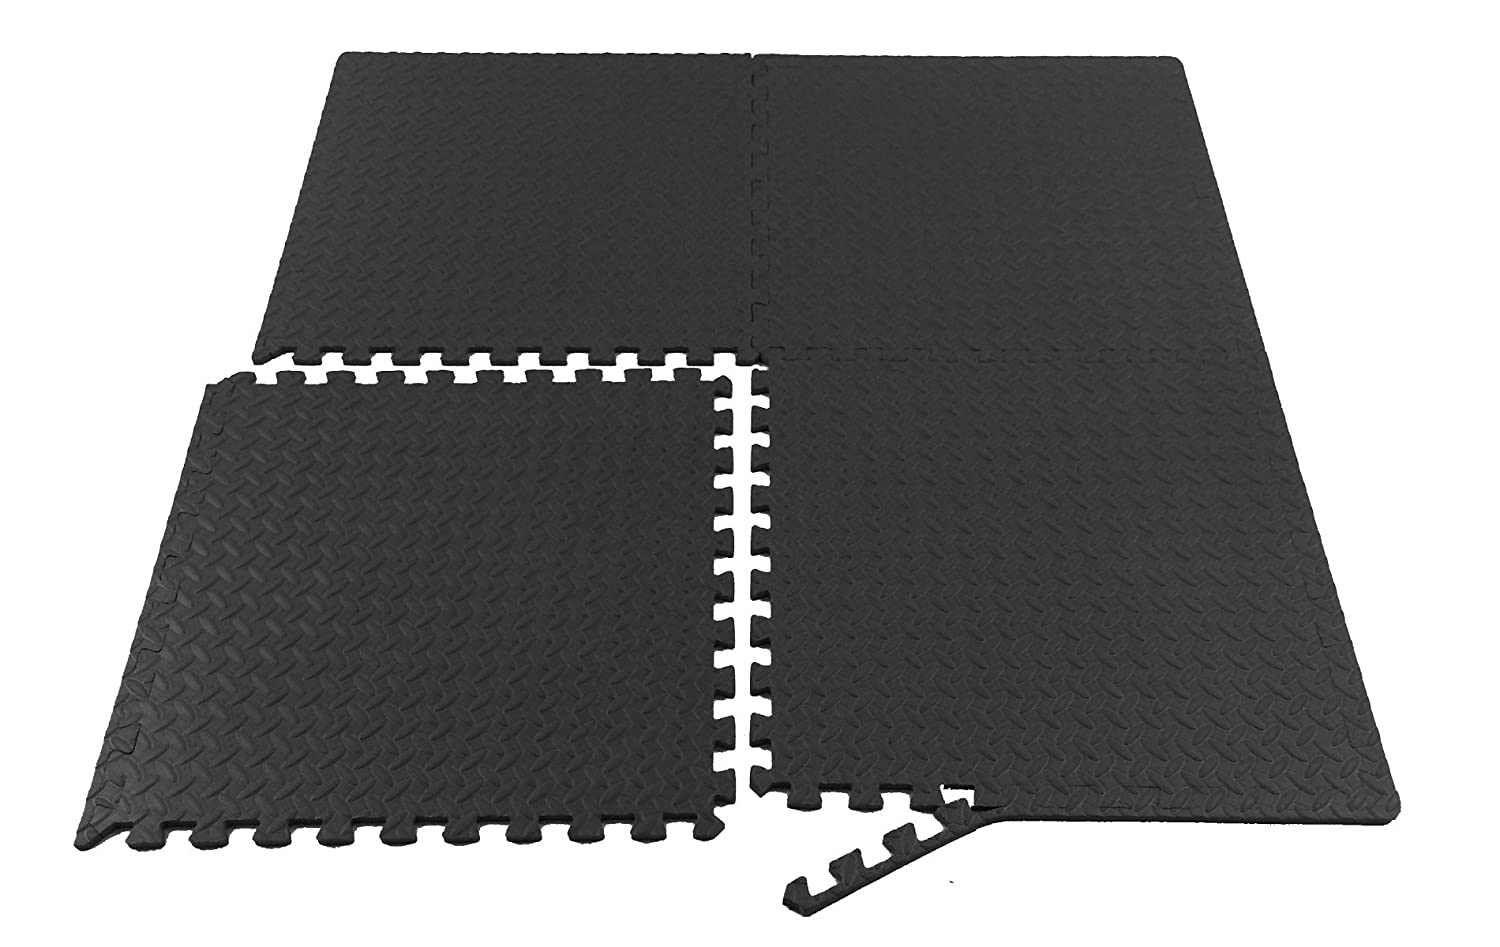 matsgym of size capecaves floor interlocking commercial treadmill goodsap best photos matsgymg full home flooring concept rubber for wholesale cheap sporting foam rare com dicks gym mats